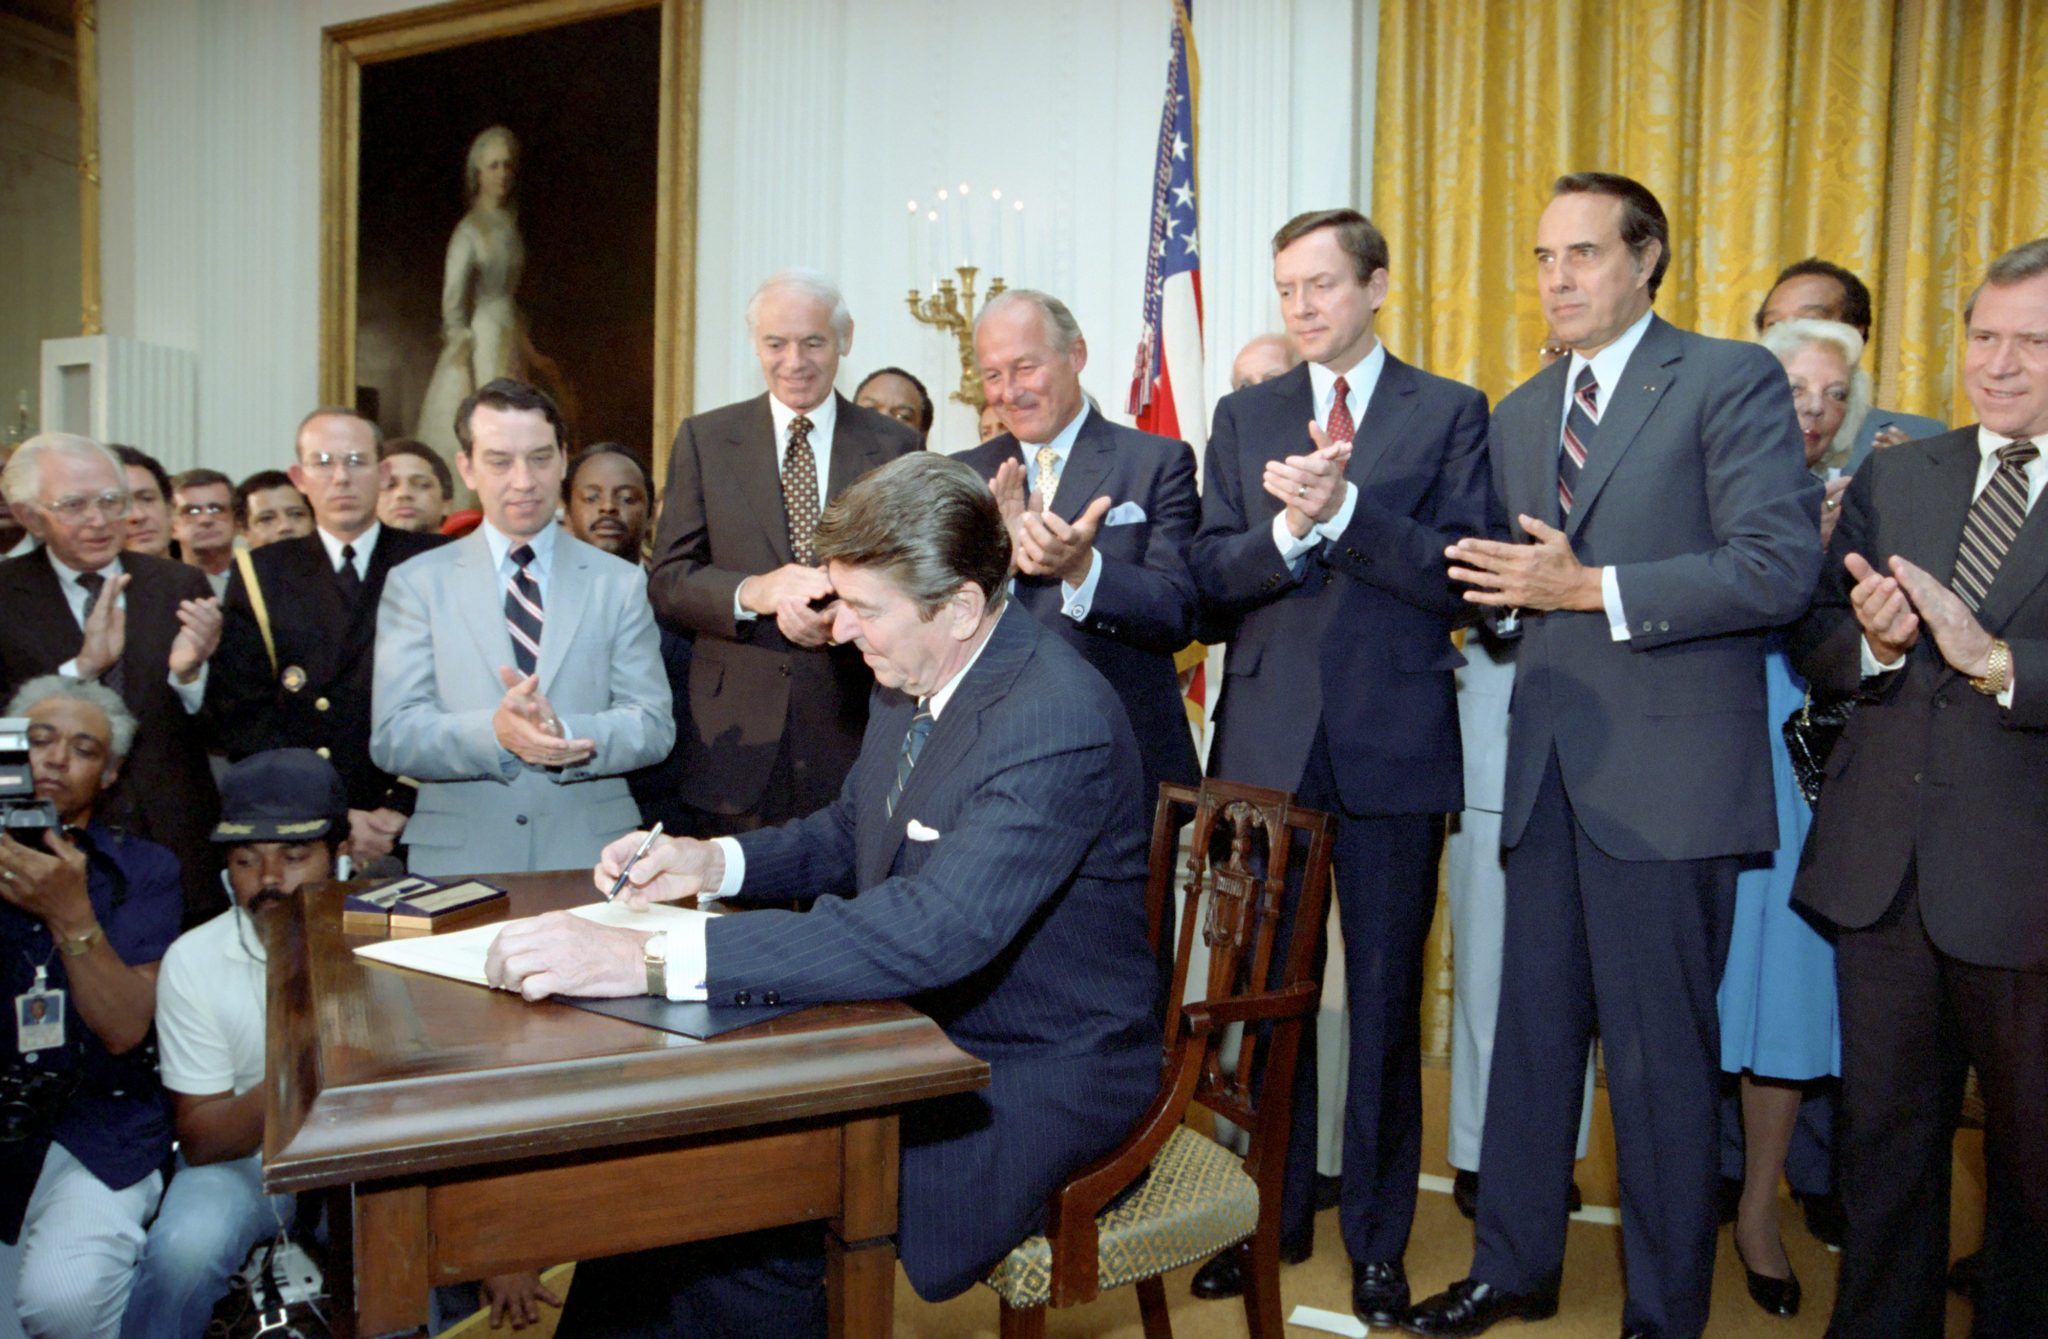 President Ronald Reagan signing Voting Rights Act legislation in the East Room of the White House on June 29, 1982. National Archives from Collection: Reagan White House Photographs